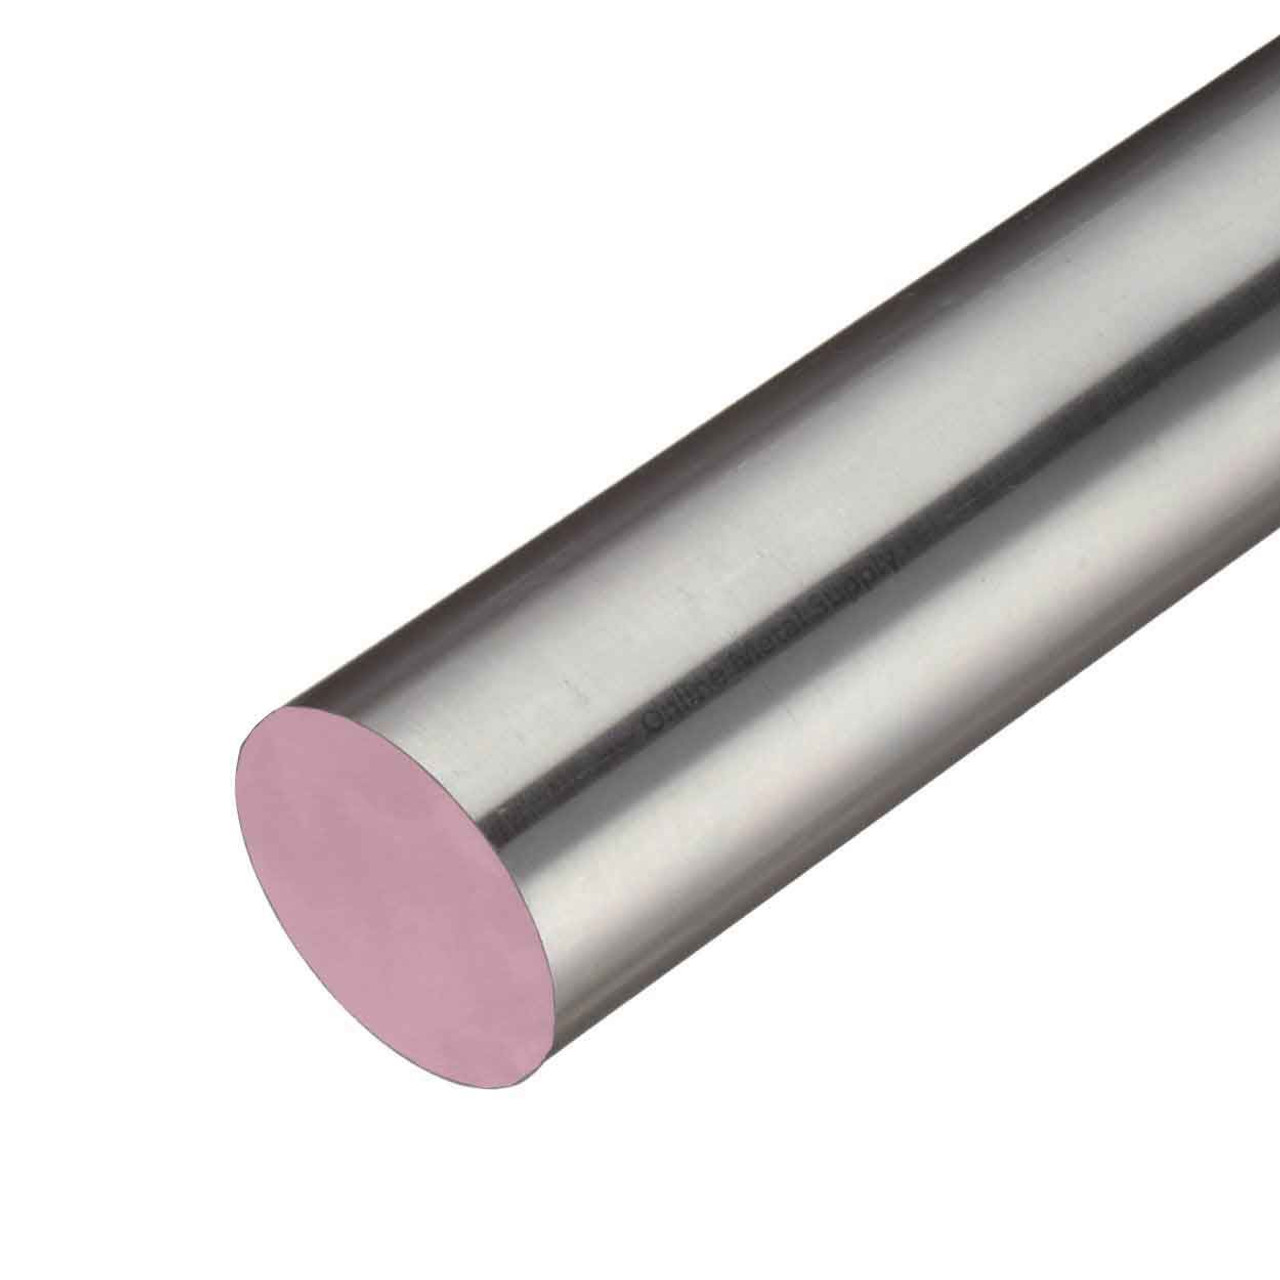 1.125 (1-1/8 inch) x 12 inches, 303 CF Stainless Steel Round Rod